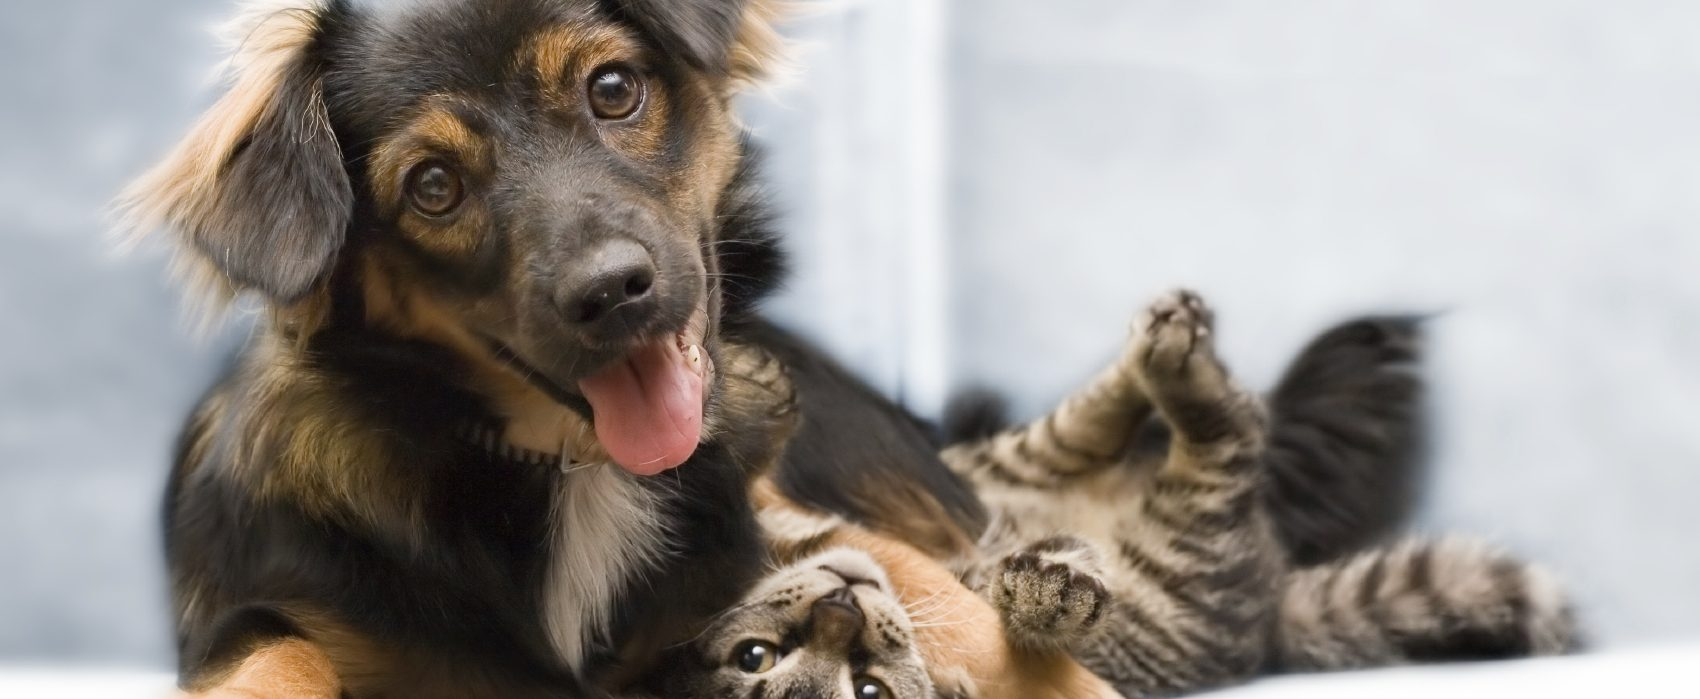 Dog and cat playin in a PawPurity blog about uni-pet natural pet care products